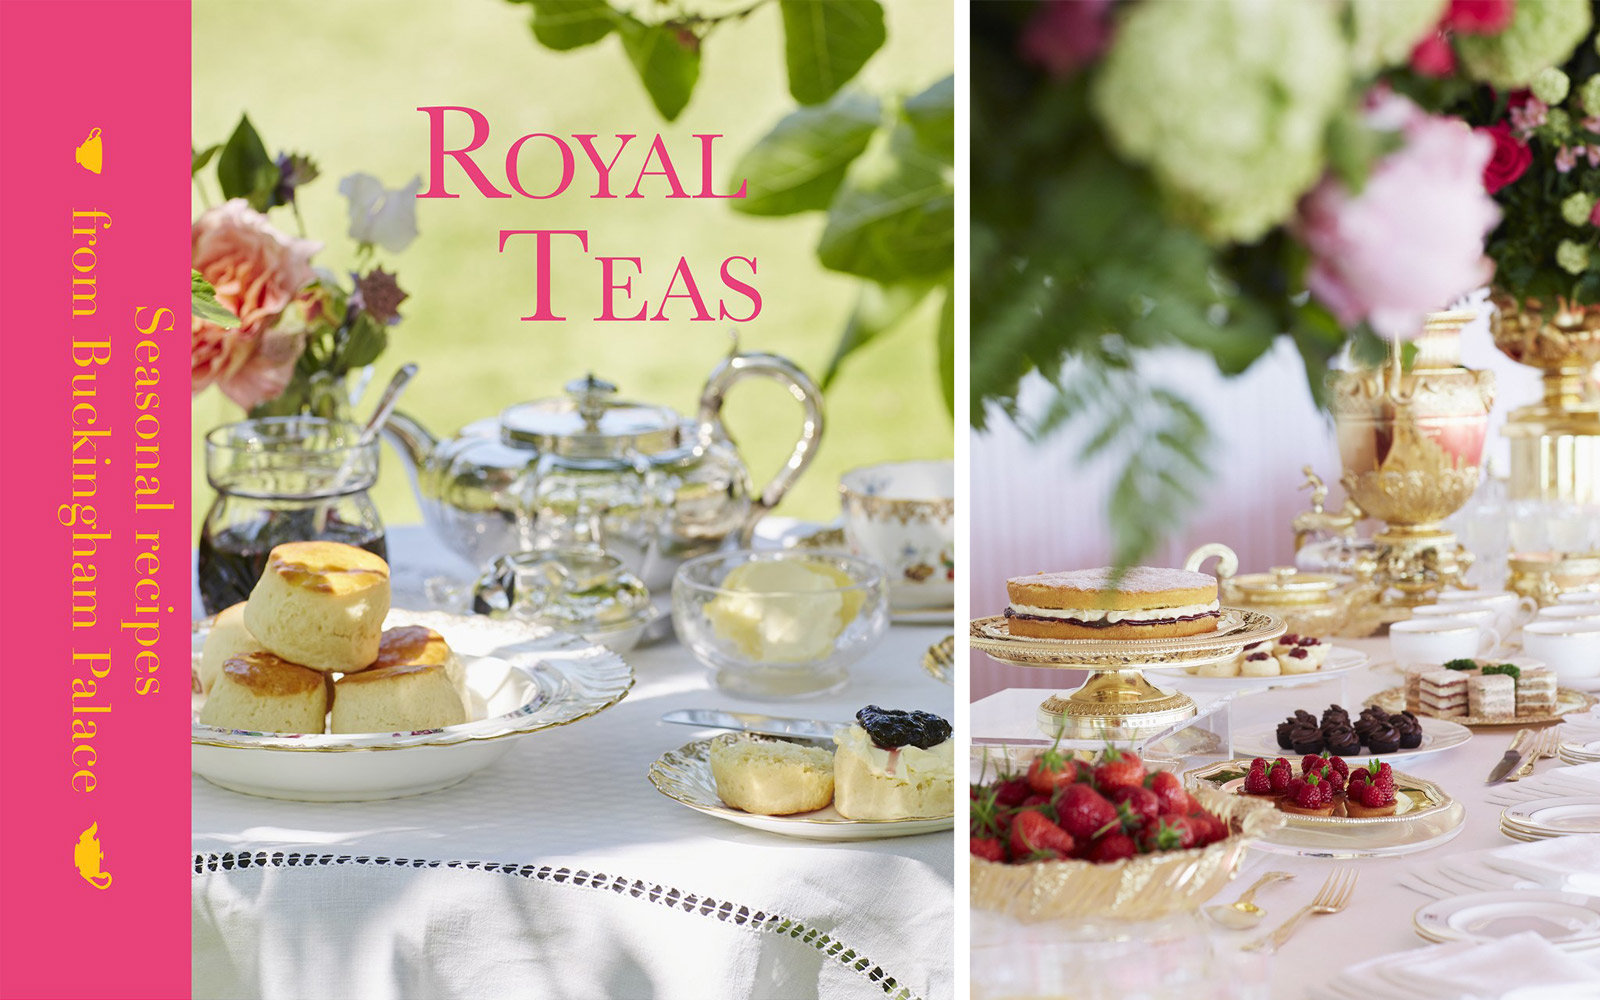 Royal Teas Book